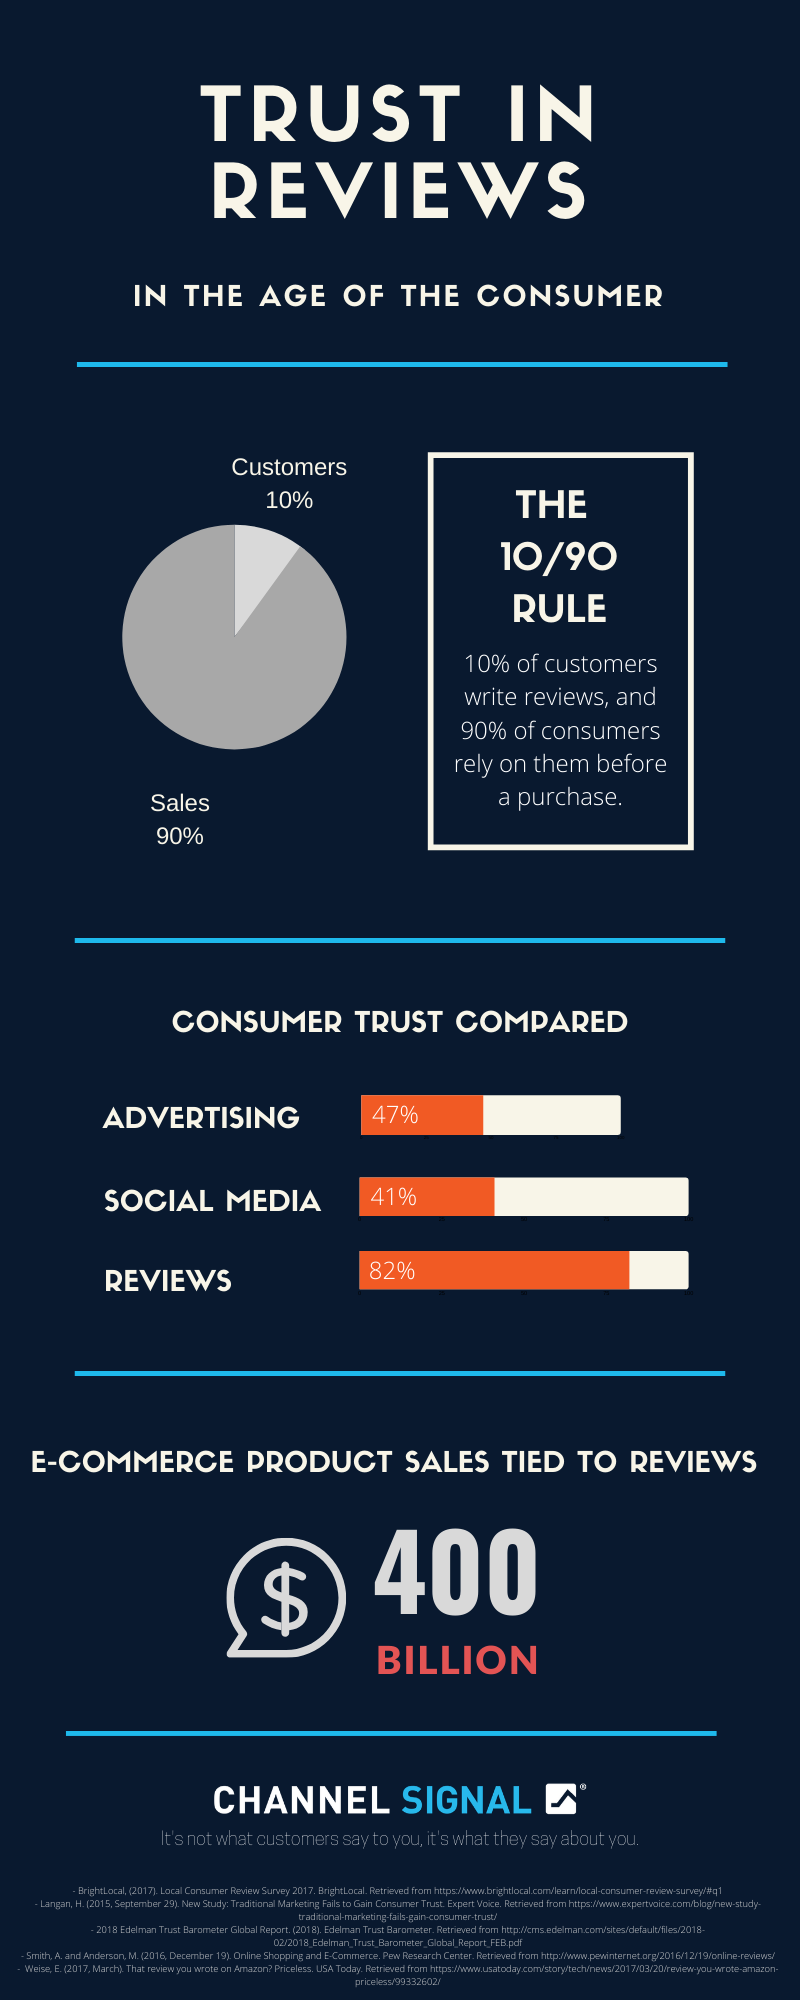 trust in reviews infographic 2020